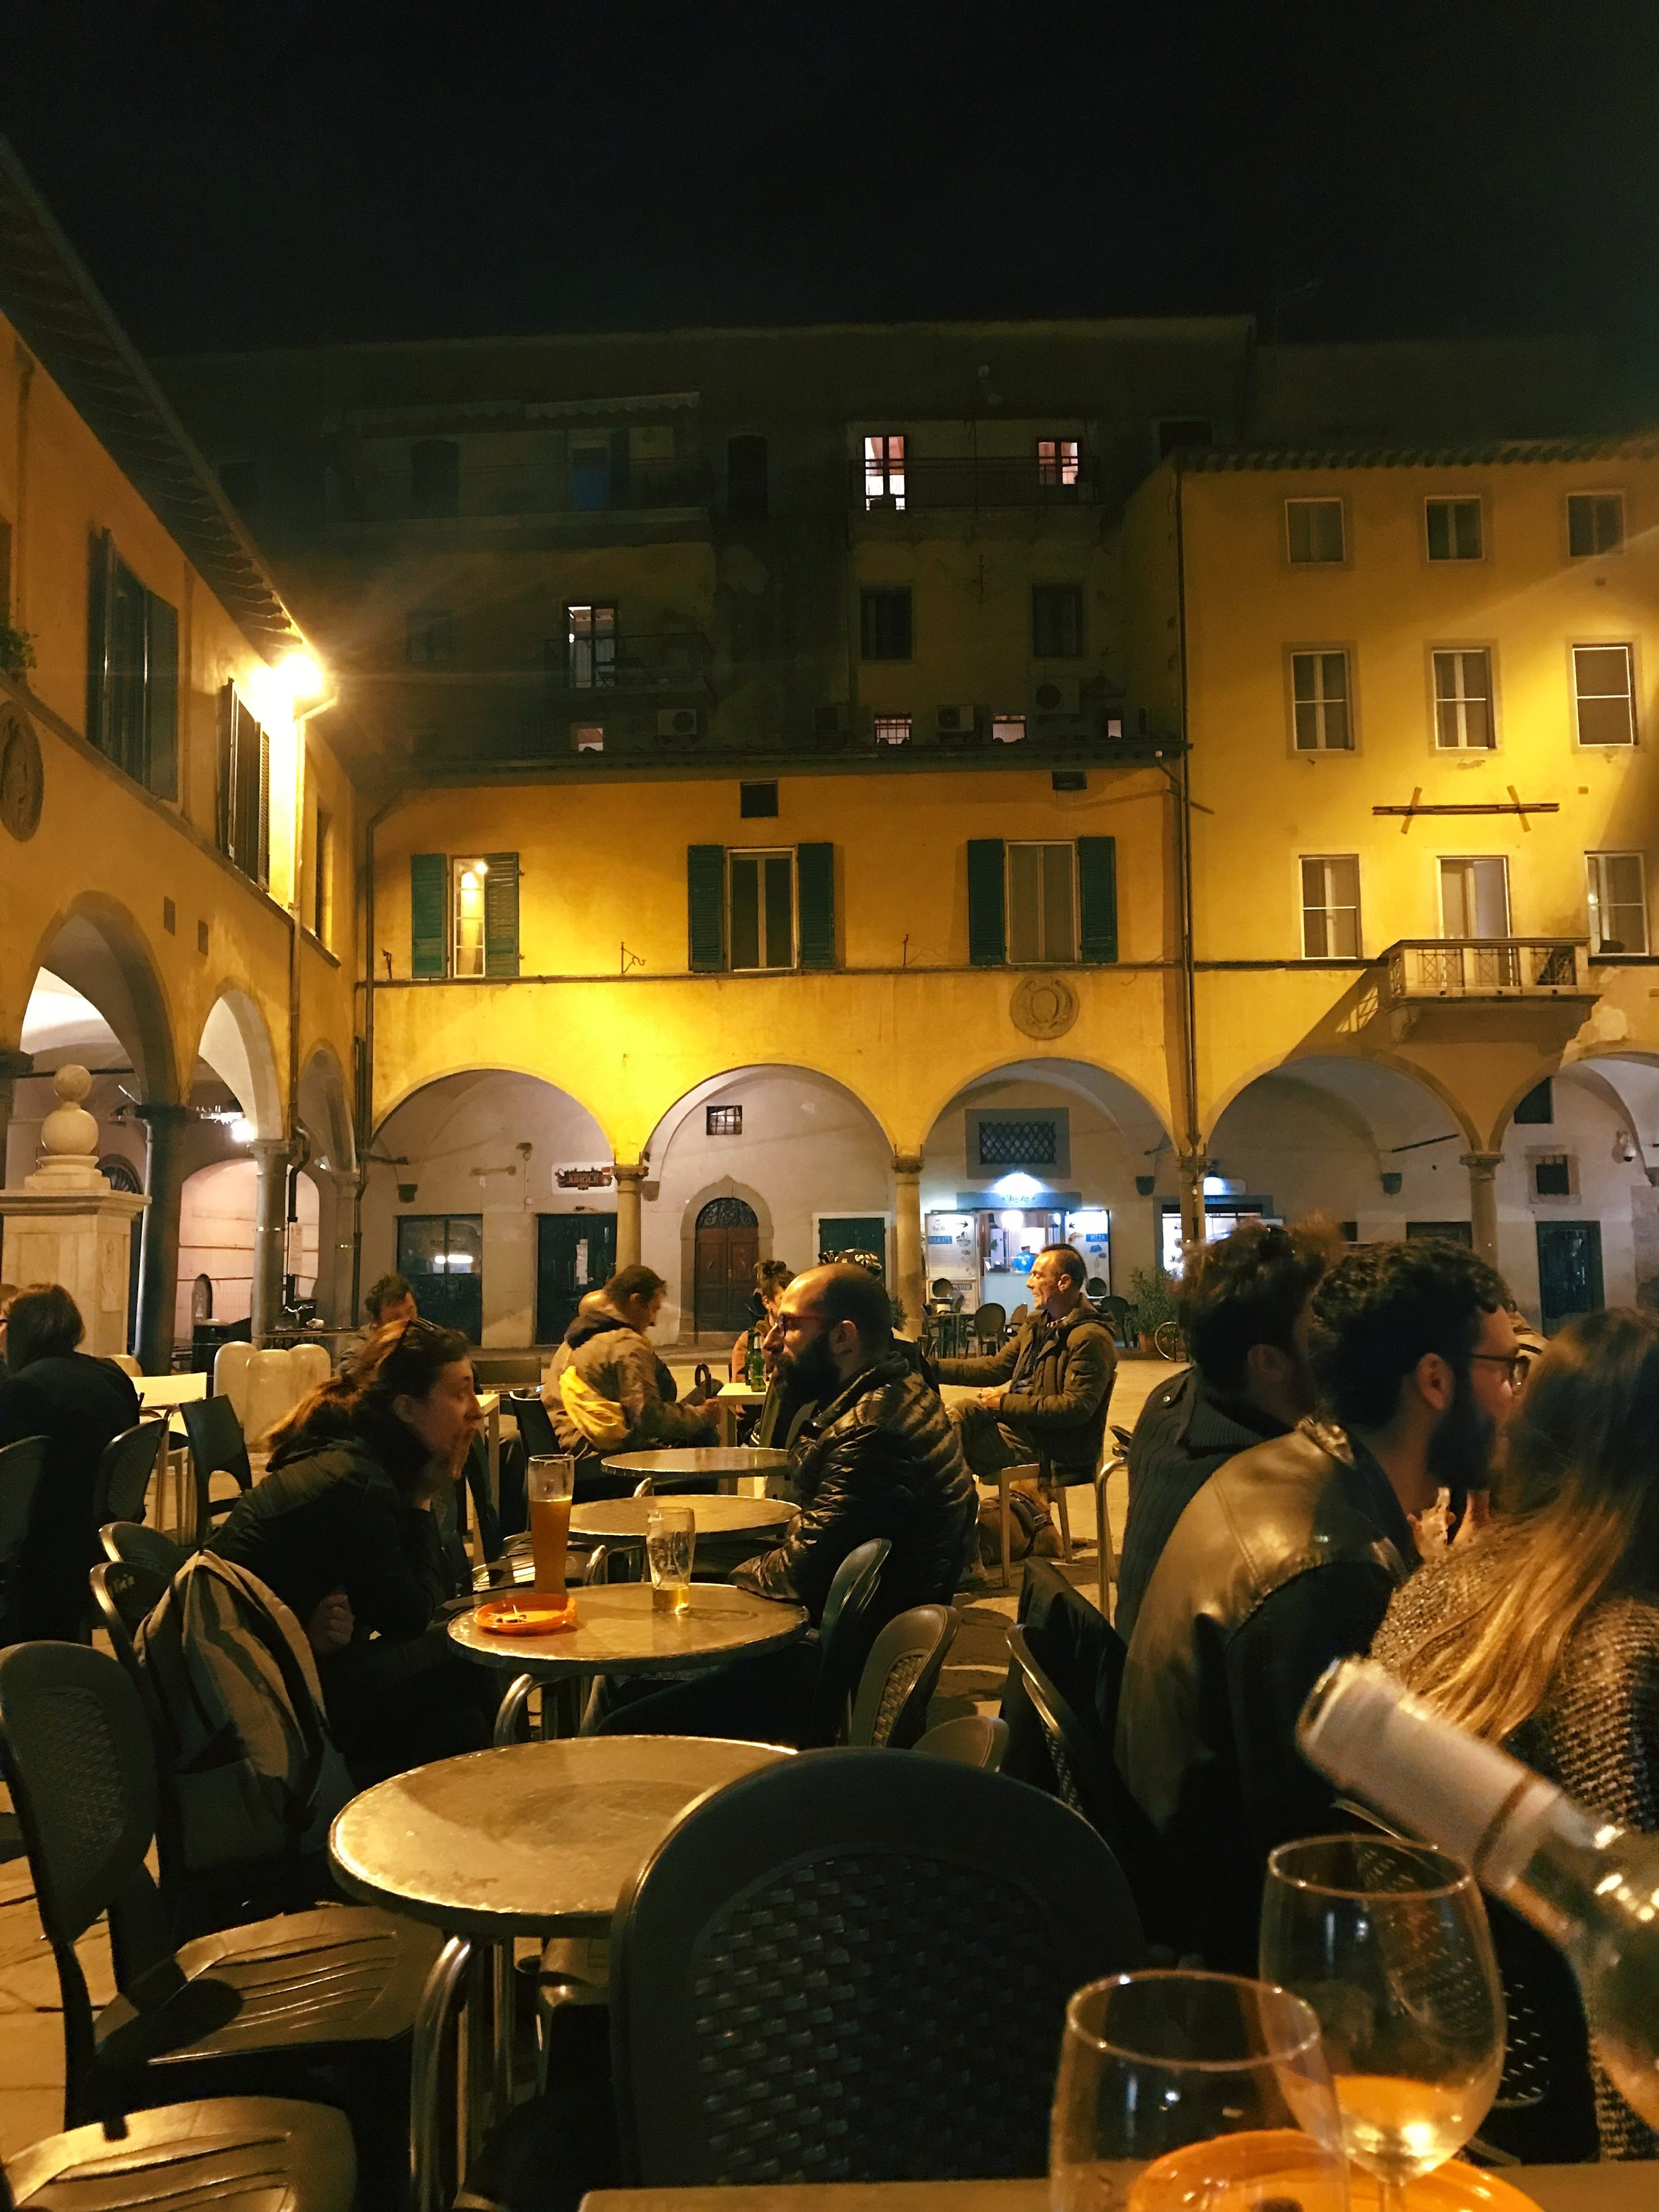 The Violin  . Come here in the evening for a delicious and cheap aperitivo. For 5 euro, you can get a bottle of wine and plate of food. Located in Piazza delle Vettovaglie.